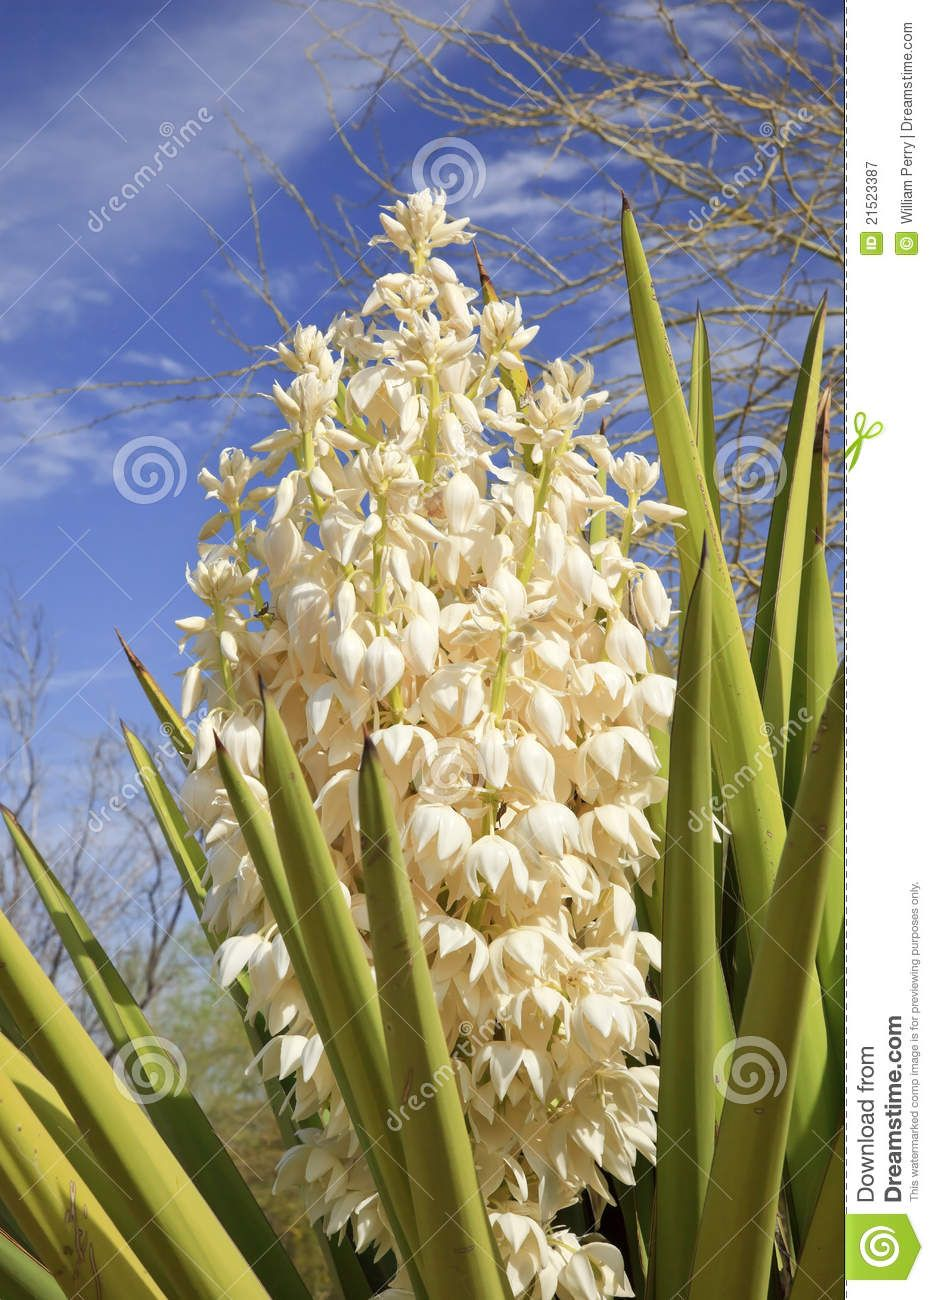 Yucca Plant With White Flowers White Yucca Cactus Flowers Blossums